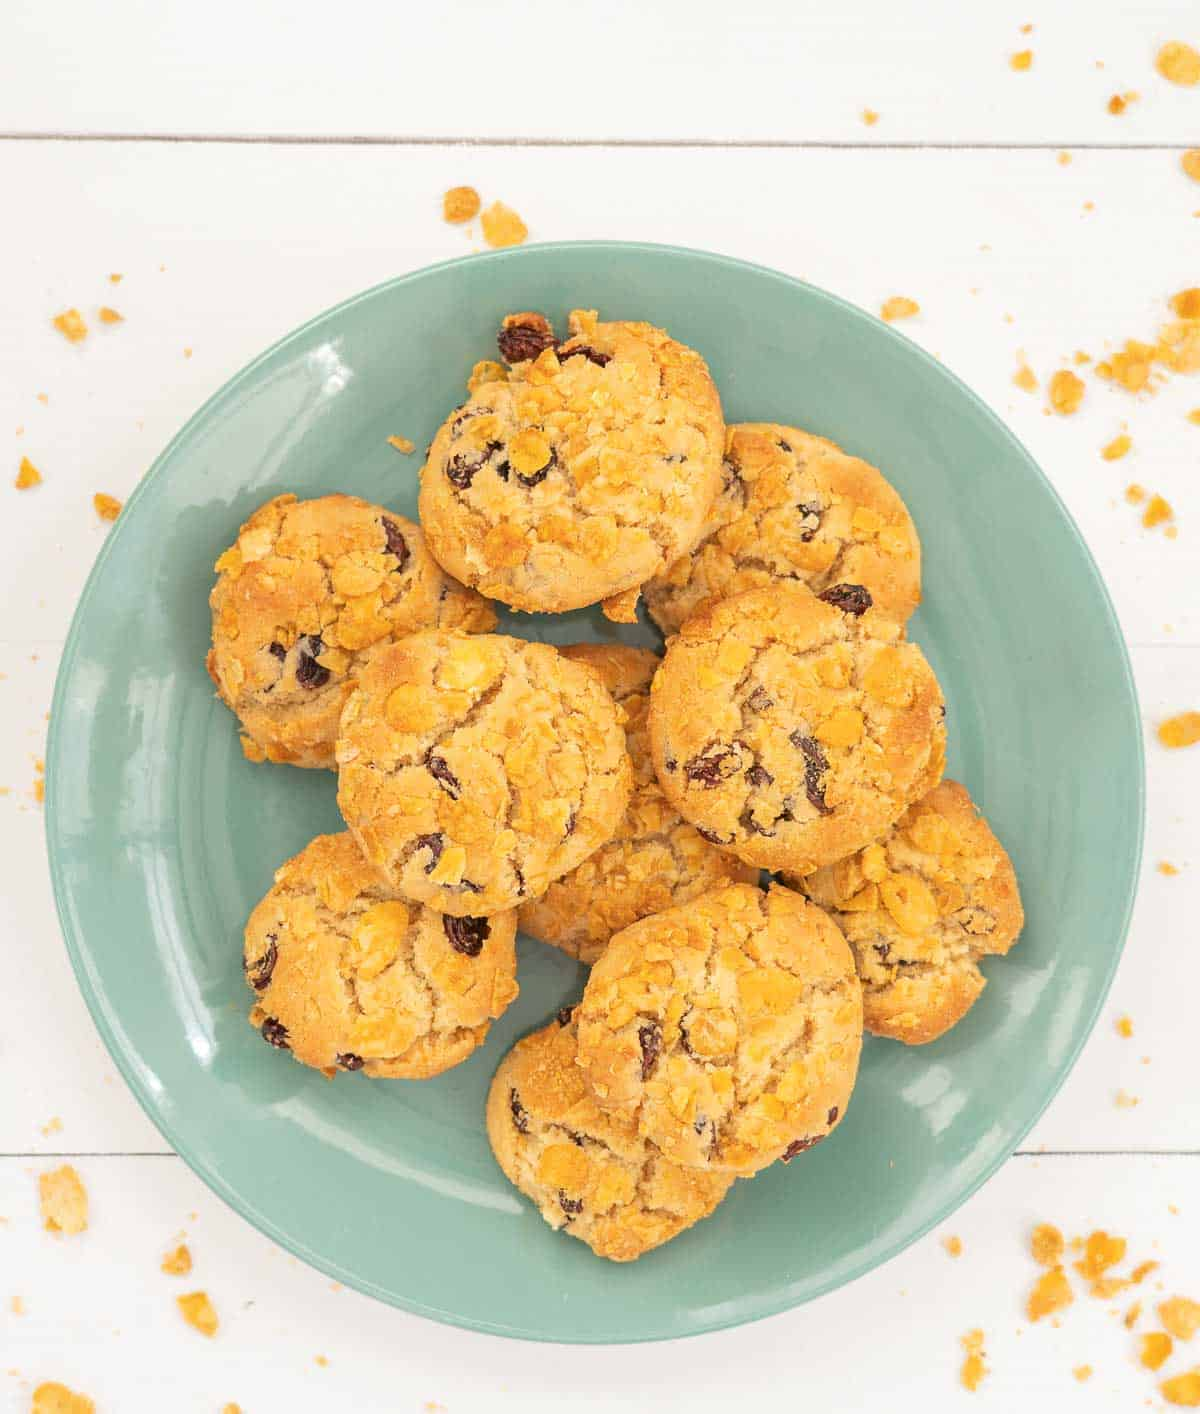 Cookies on a turquoise plate, cornflakes on the table top around the plate